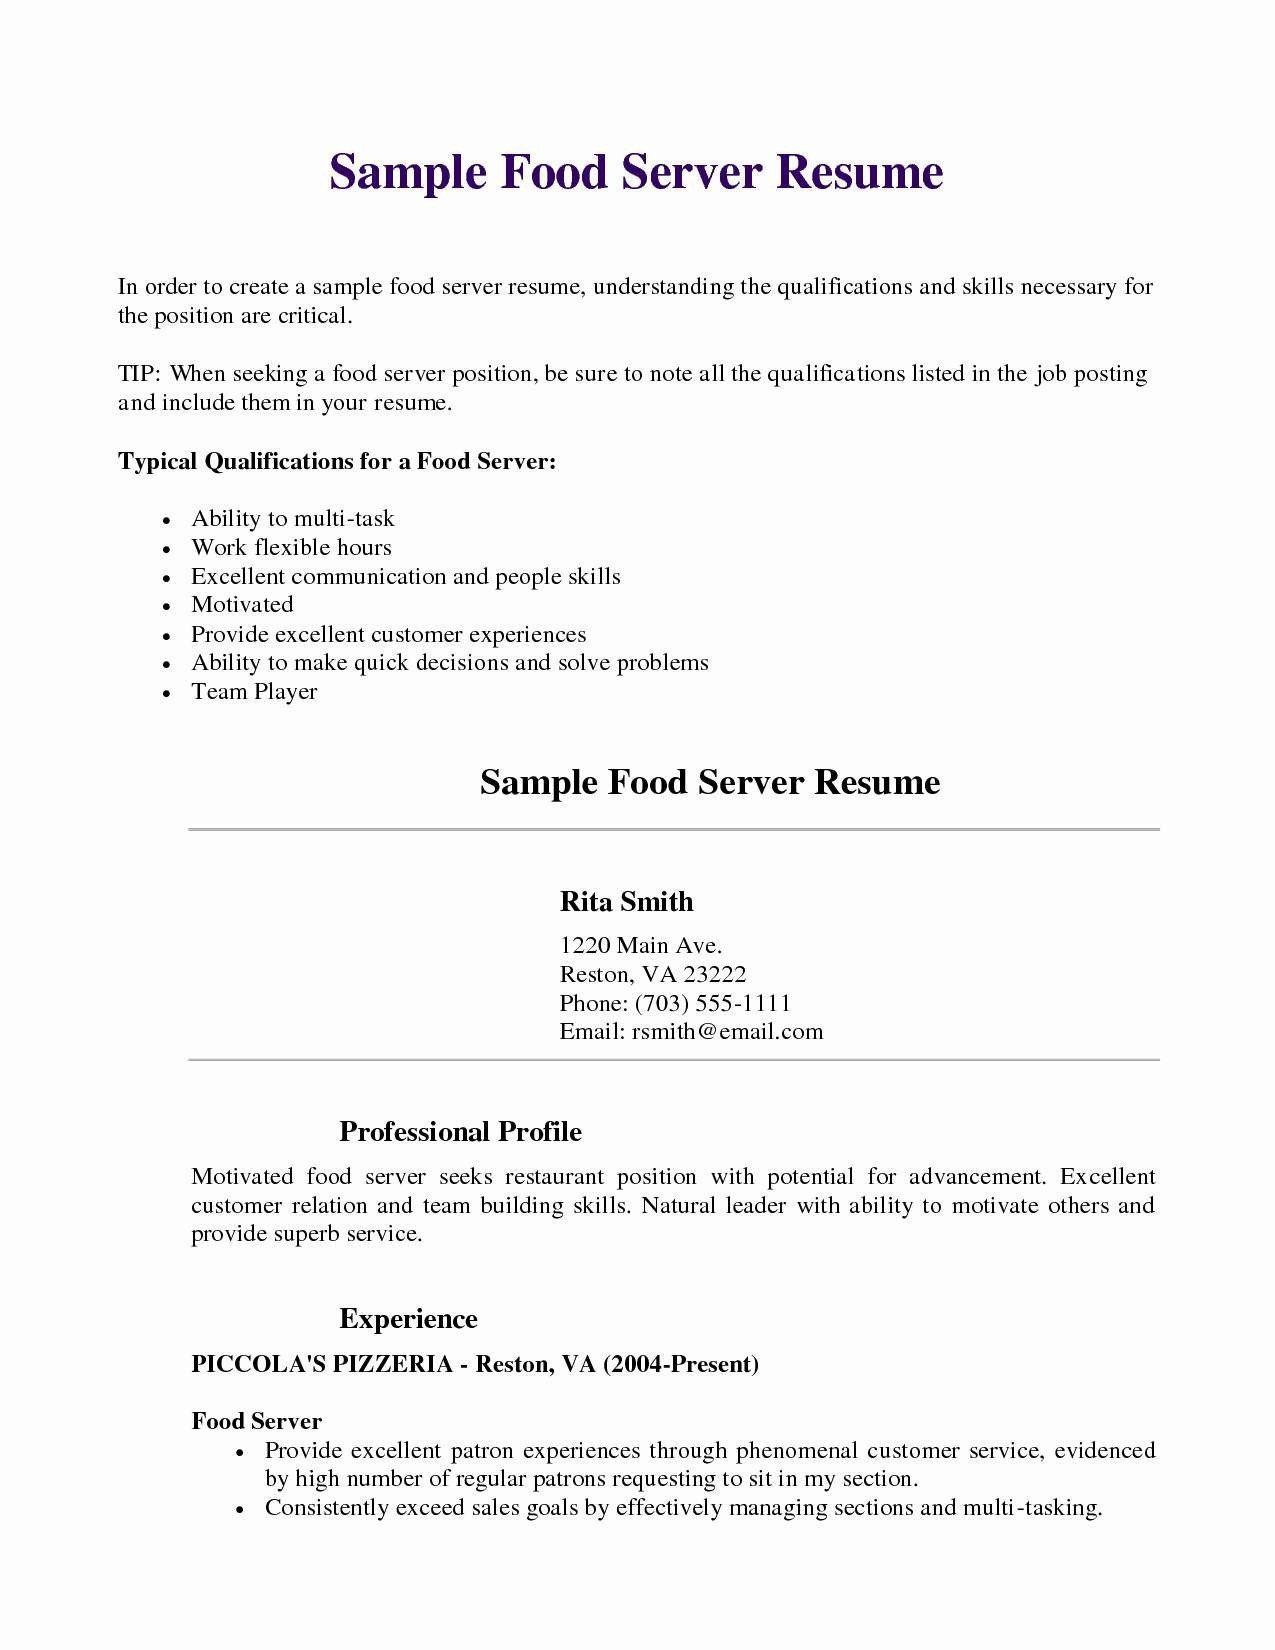 Live Sound Engineer Resume Resume Template Resume Objective Examples Server Resume Resume Skills